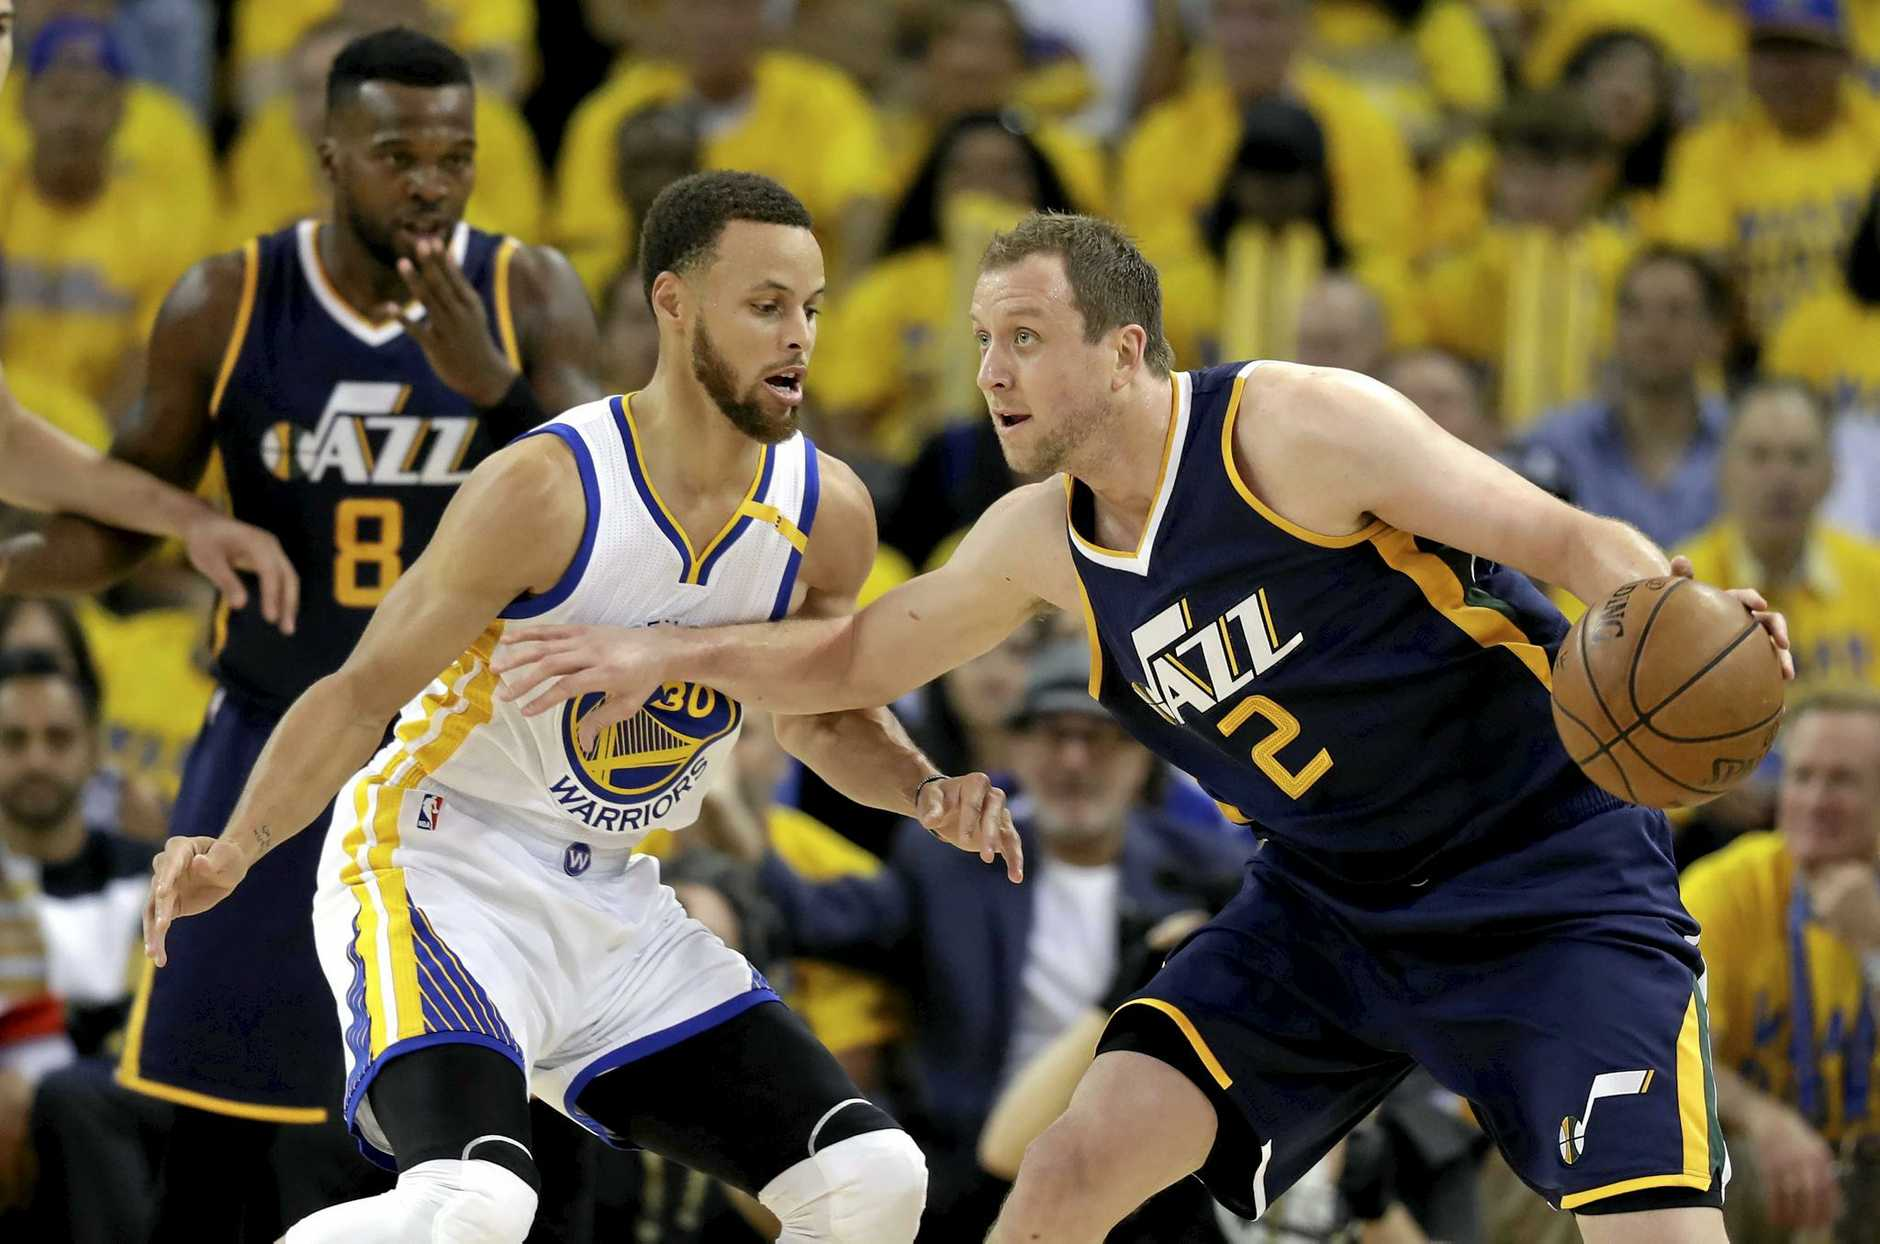 Utah Jazz's Joe Ingles (2) takes on Golden State Warriors' Stephen Curry during the NBA playoff series.